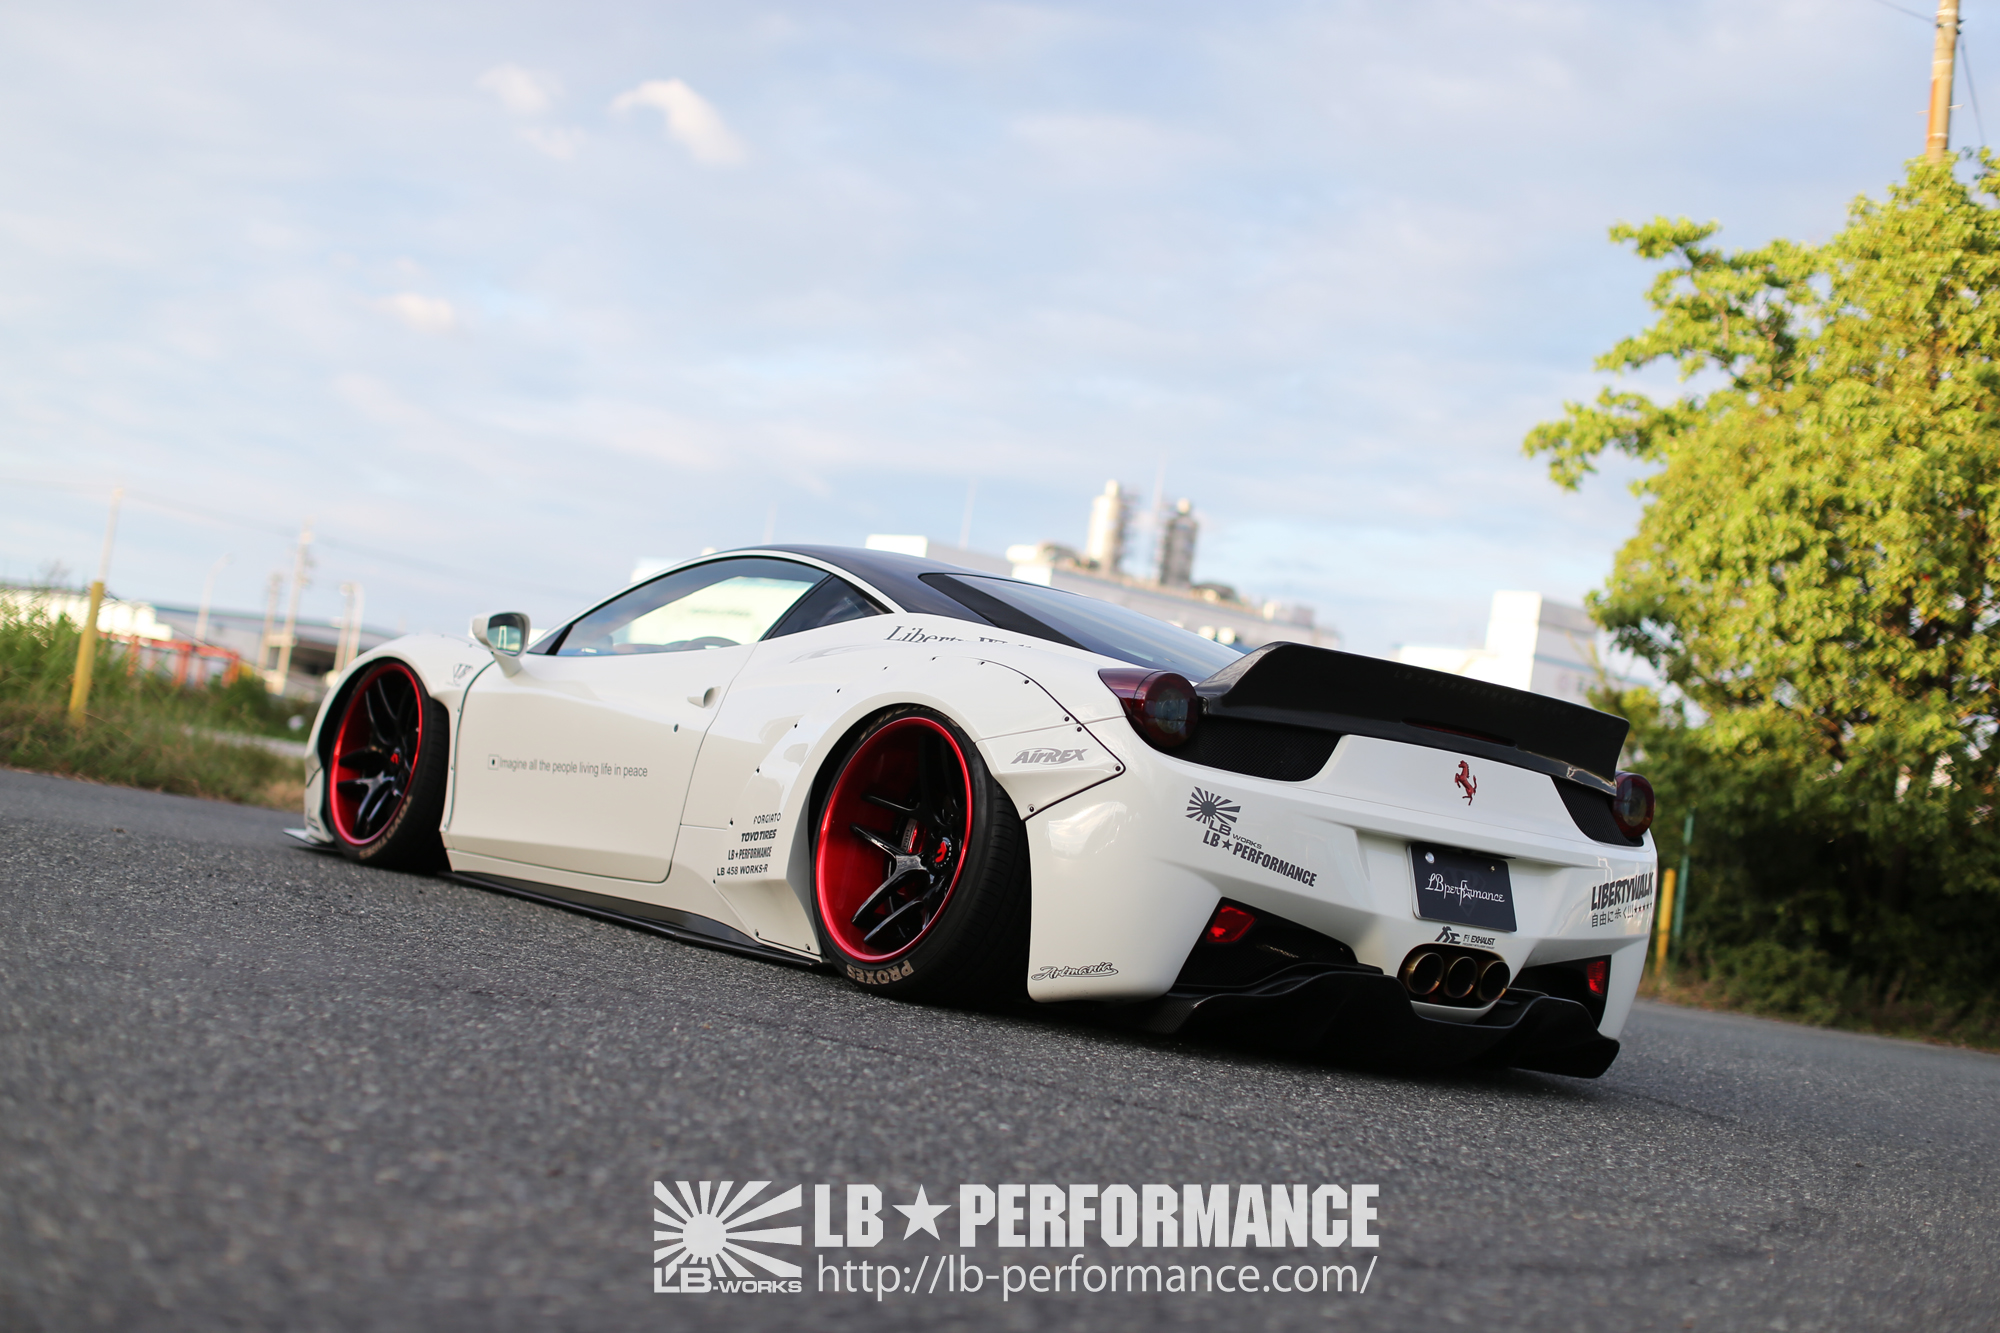 IMG_1004-1 LB-WORKS 458